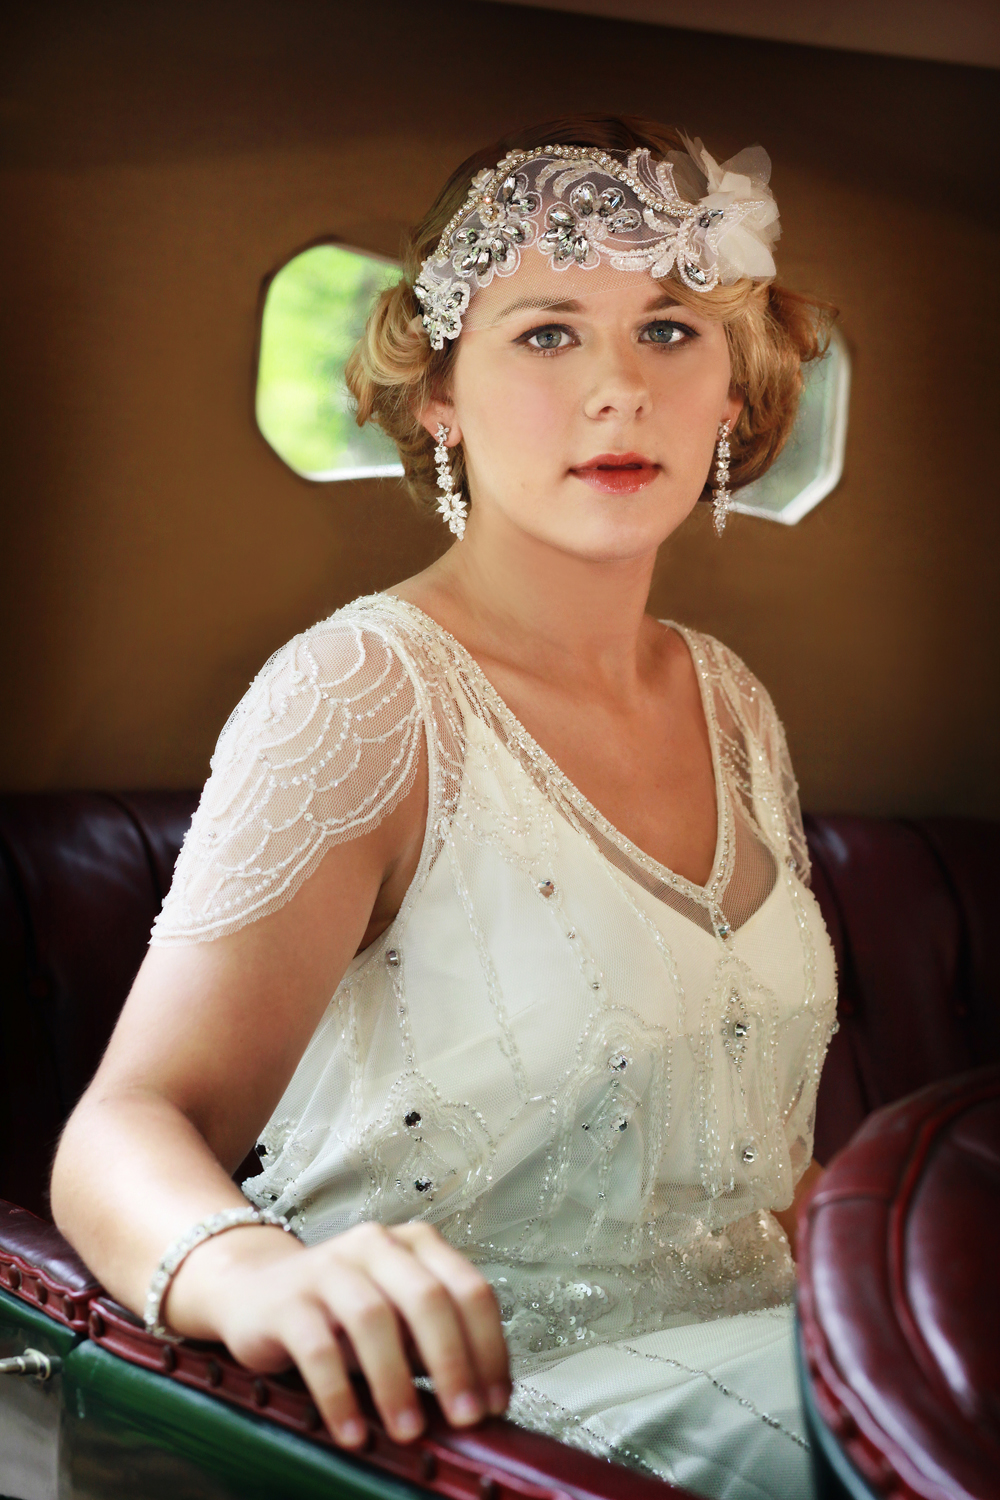 Great Gatsby Bridal Shoot with Vintage Car